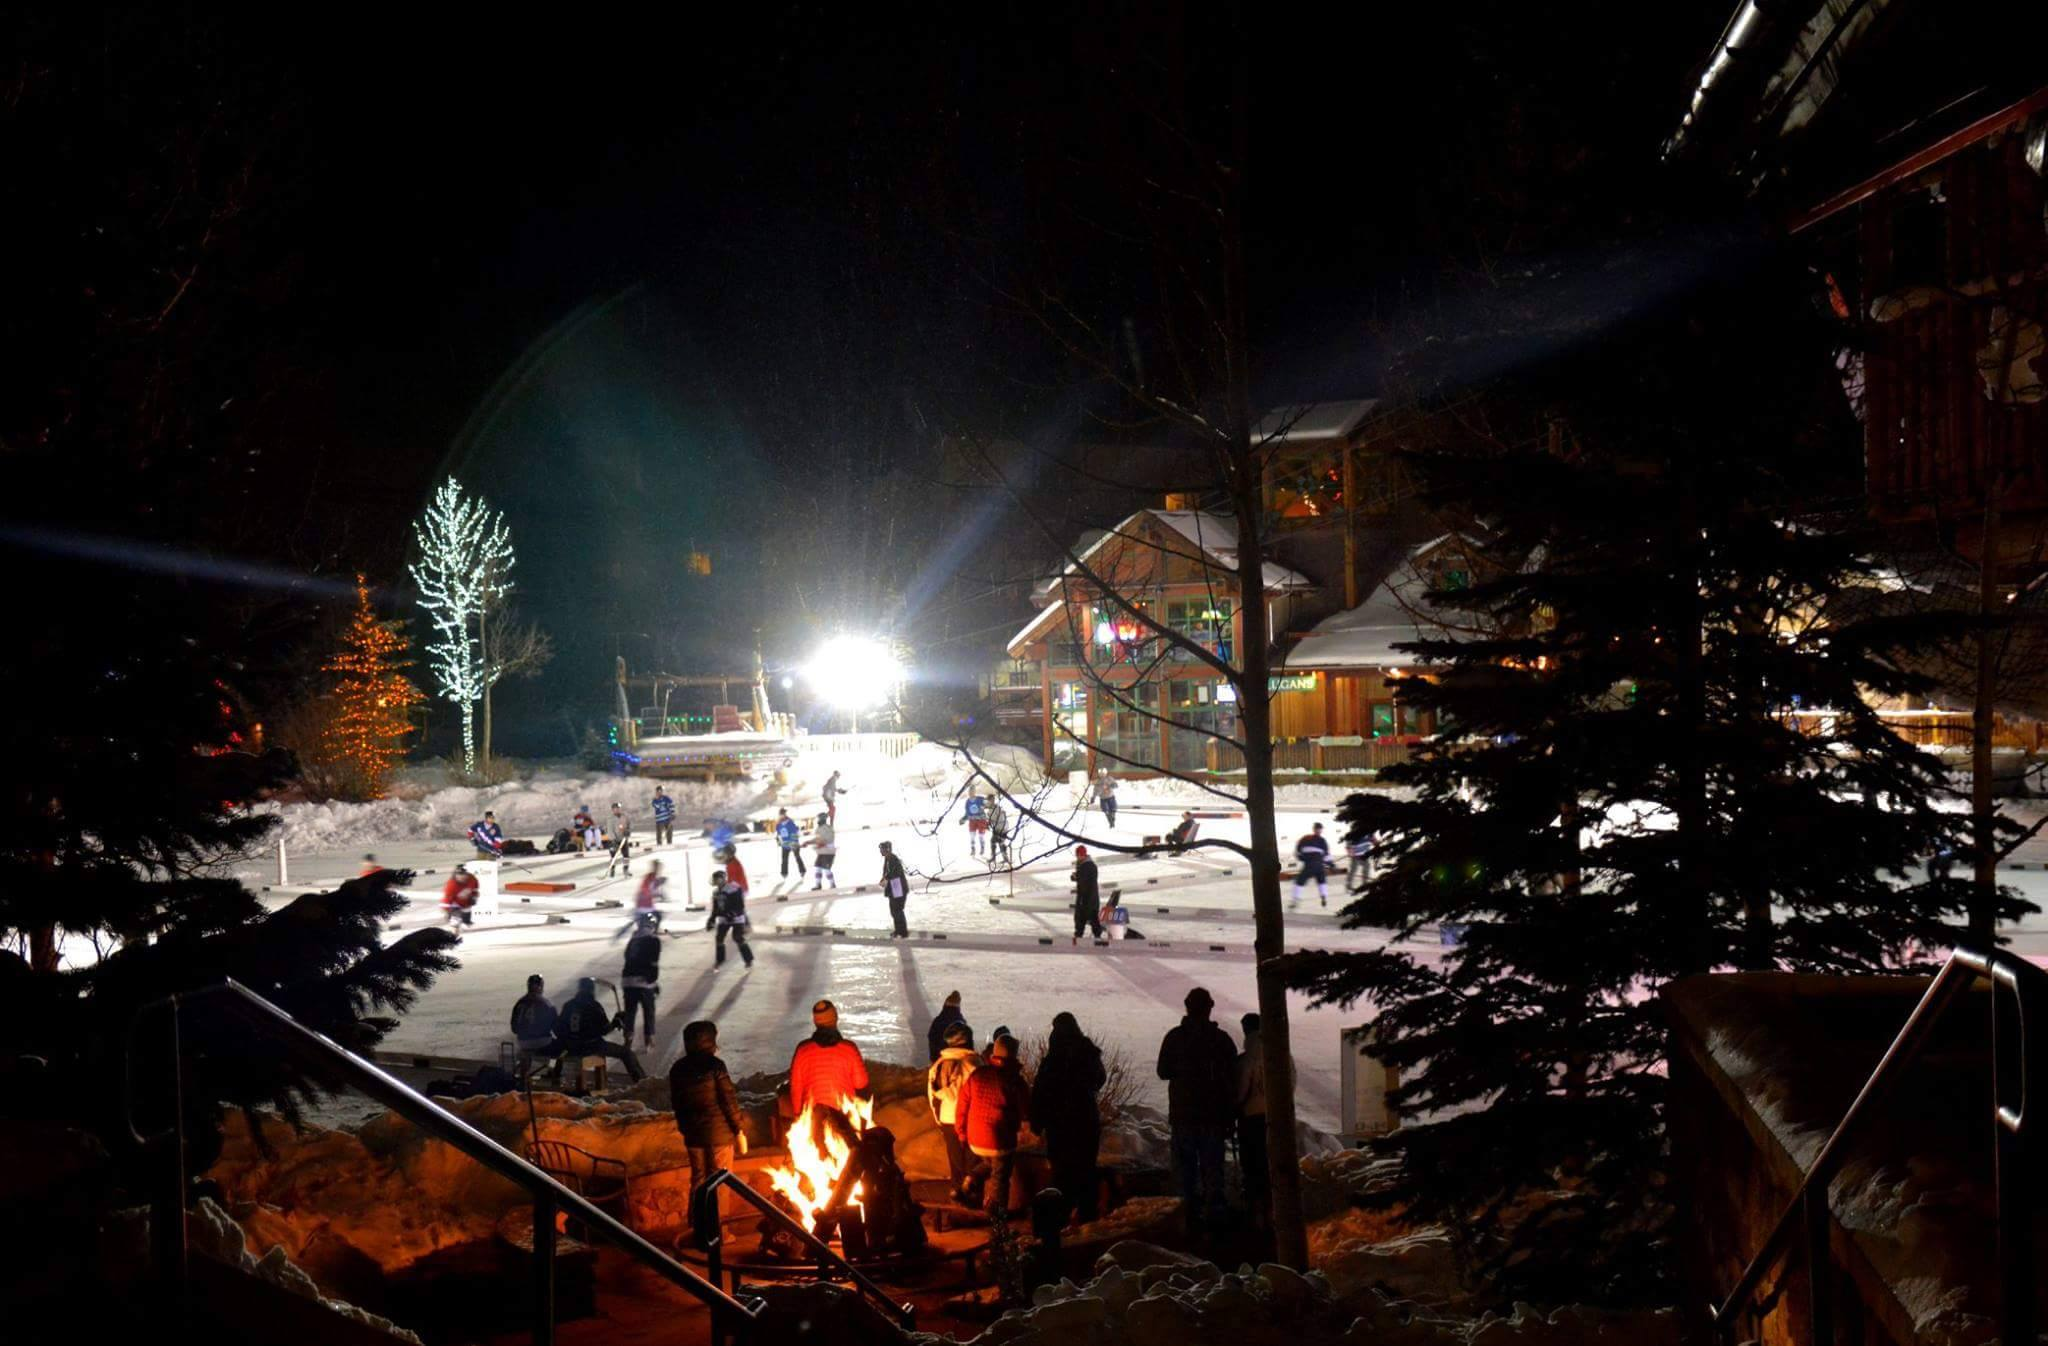 Night play at Dawg Nation Tourney at Copper Mountain (credit: Dawg Nation Hockey Foundation)